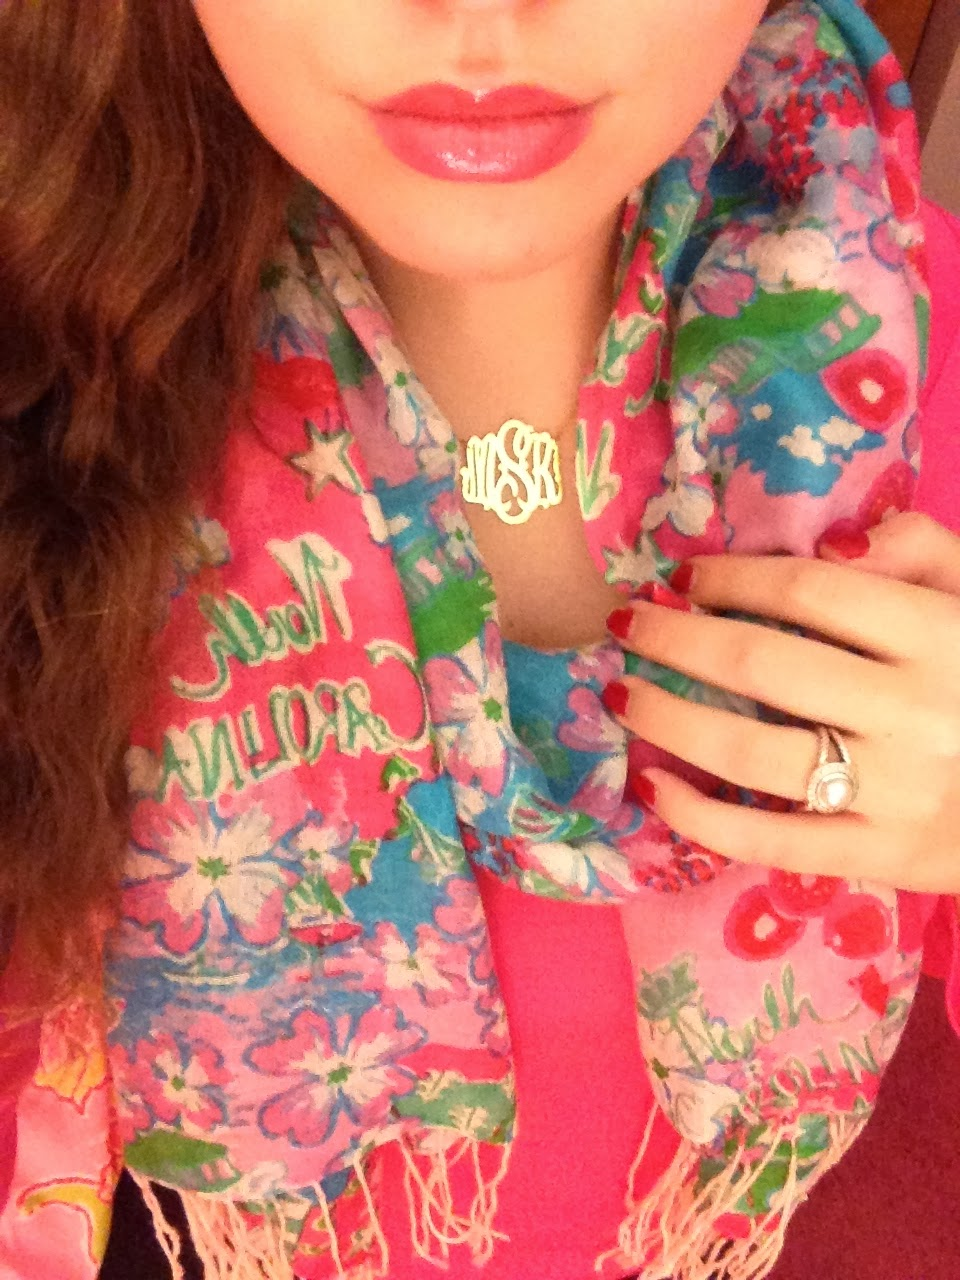 North Carolina Belle Monogram Monday and Lilly Pulitzer